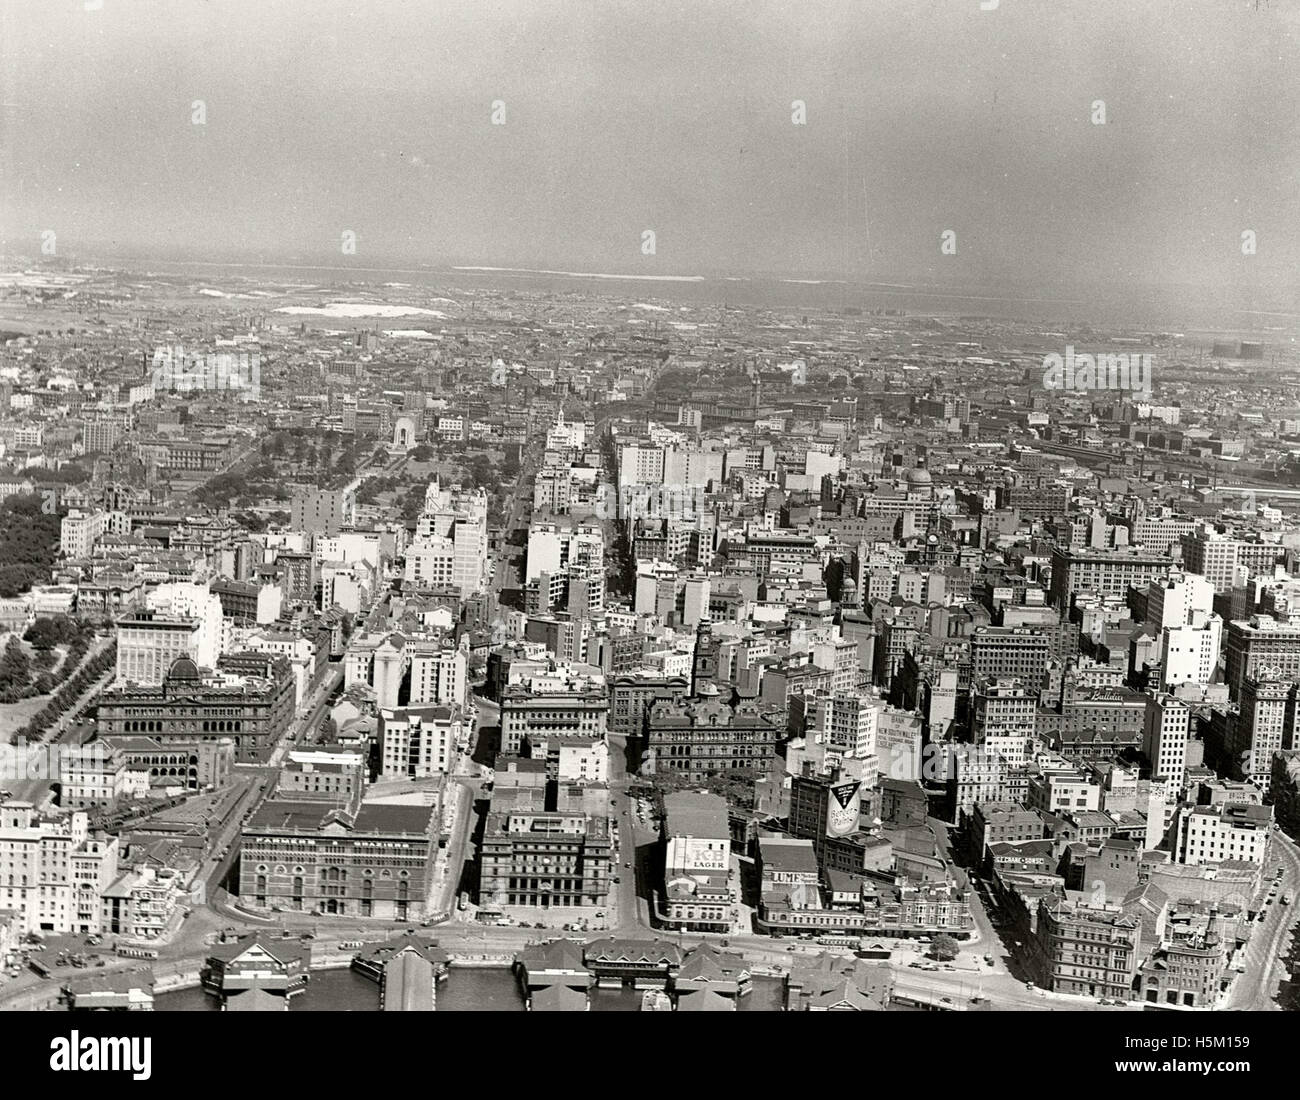 City looking south from Circular Quay - 1937 - Stock Image